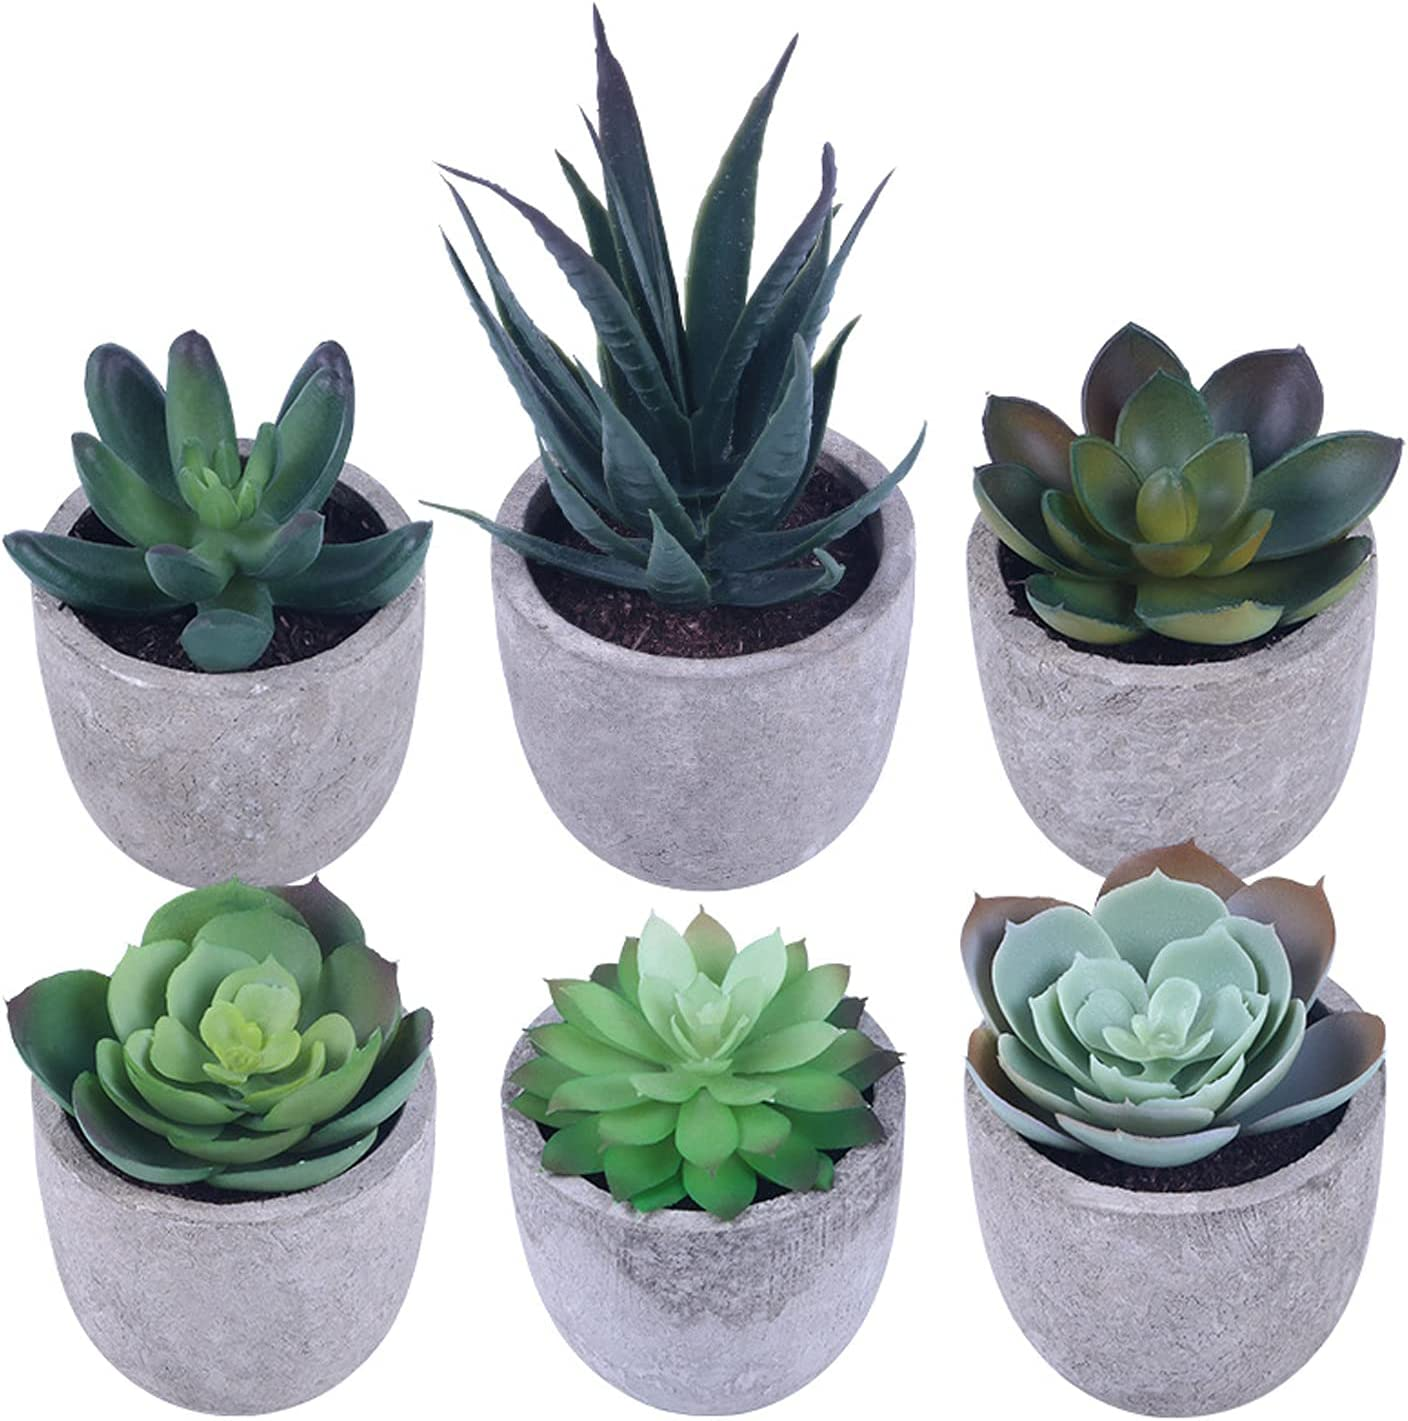 Succulents Plants Artificial, Mini Fake Plants in Pots Faux Succulents Plants Potted for Home Bedroom Room Office Decor, Set of 6